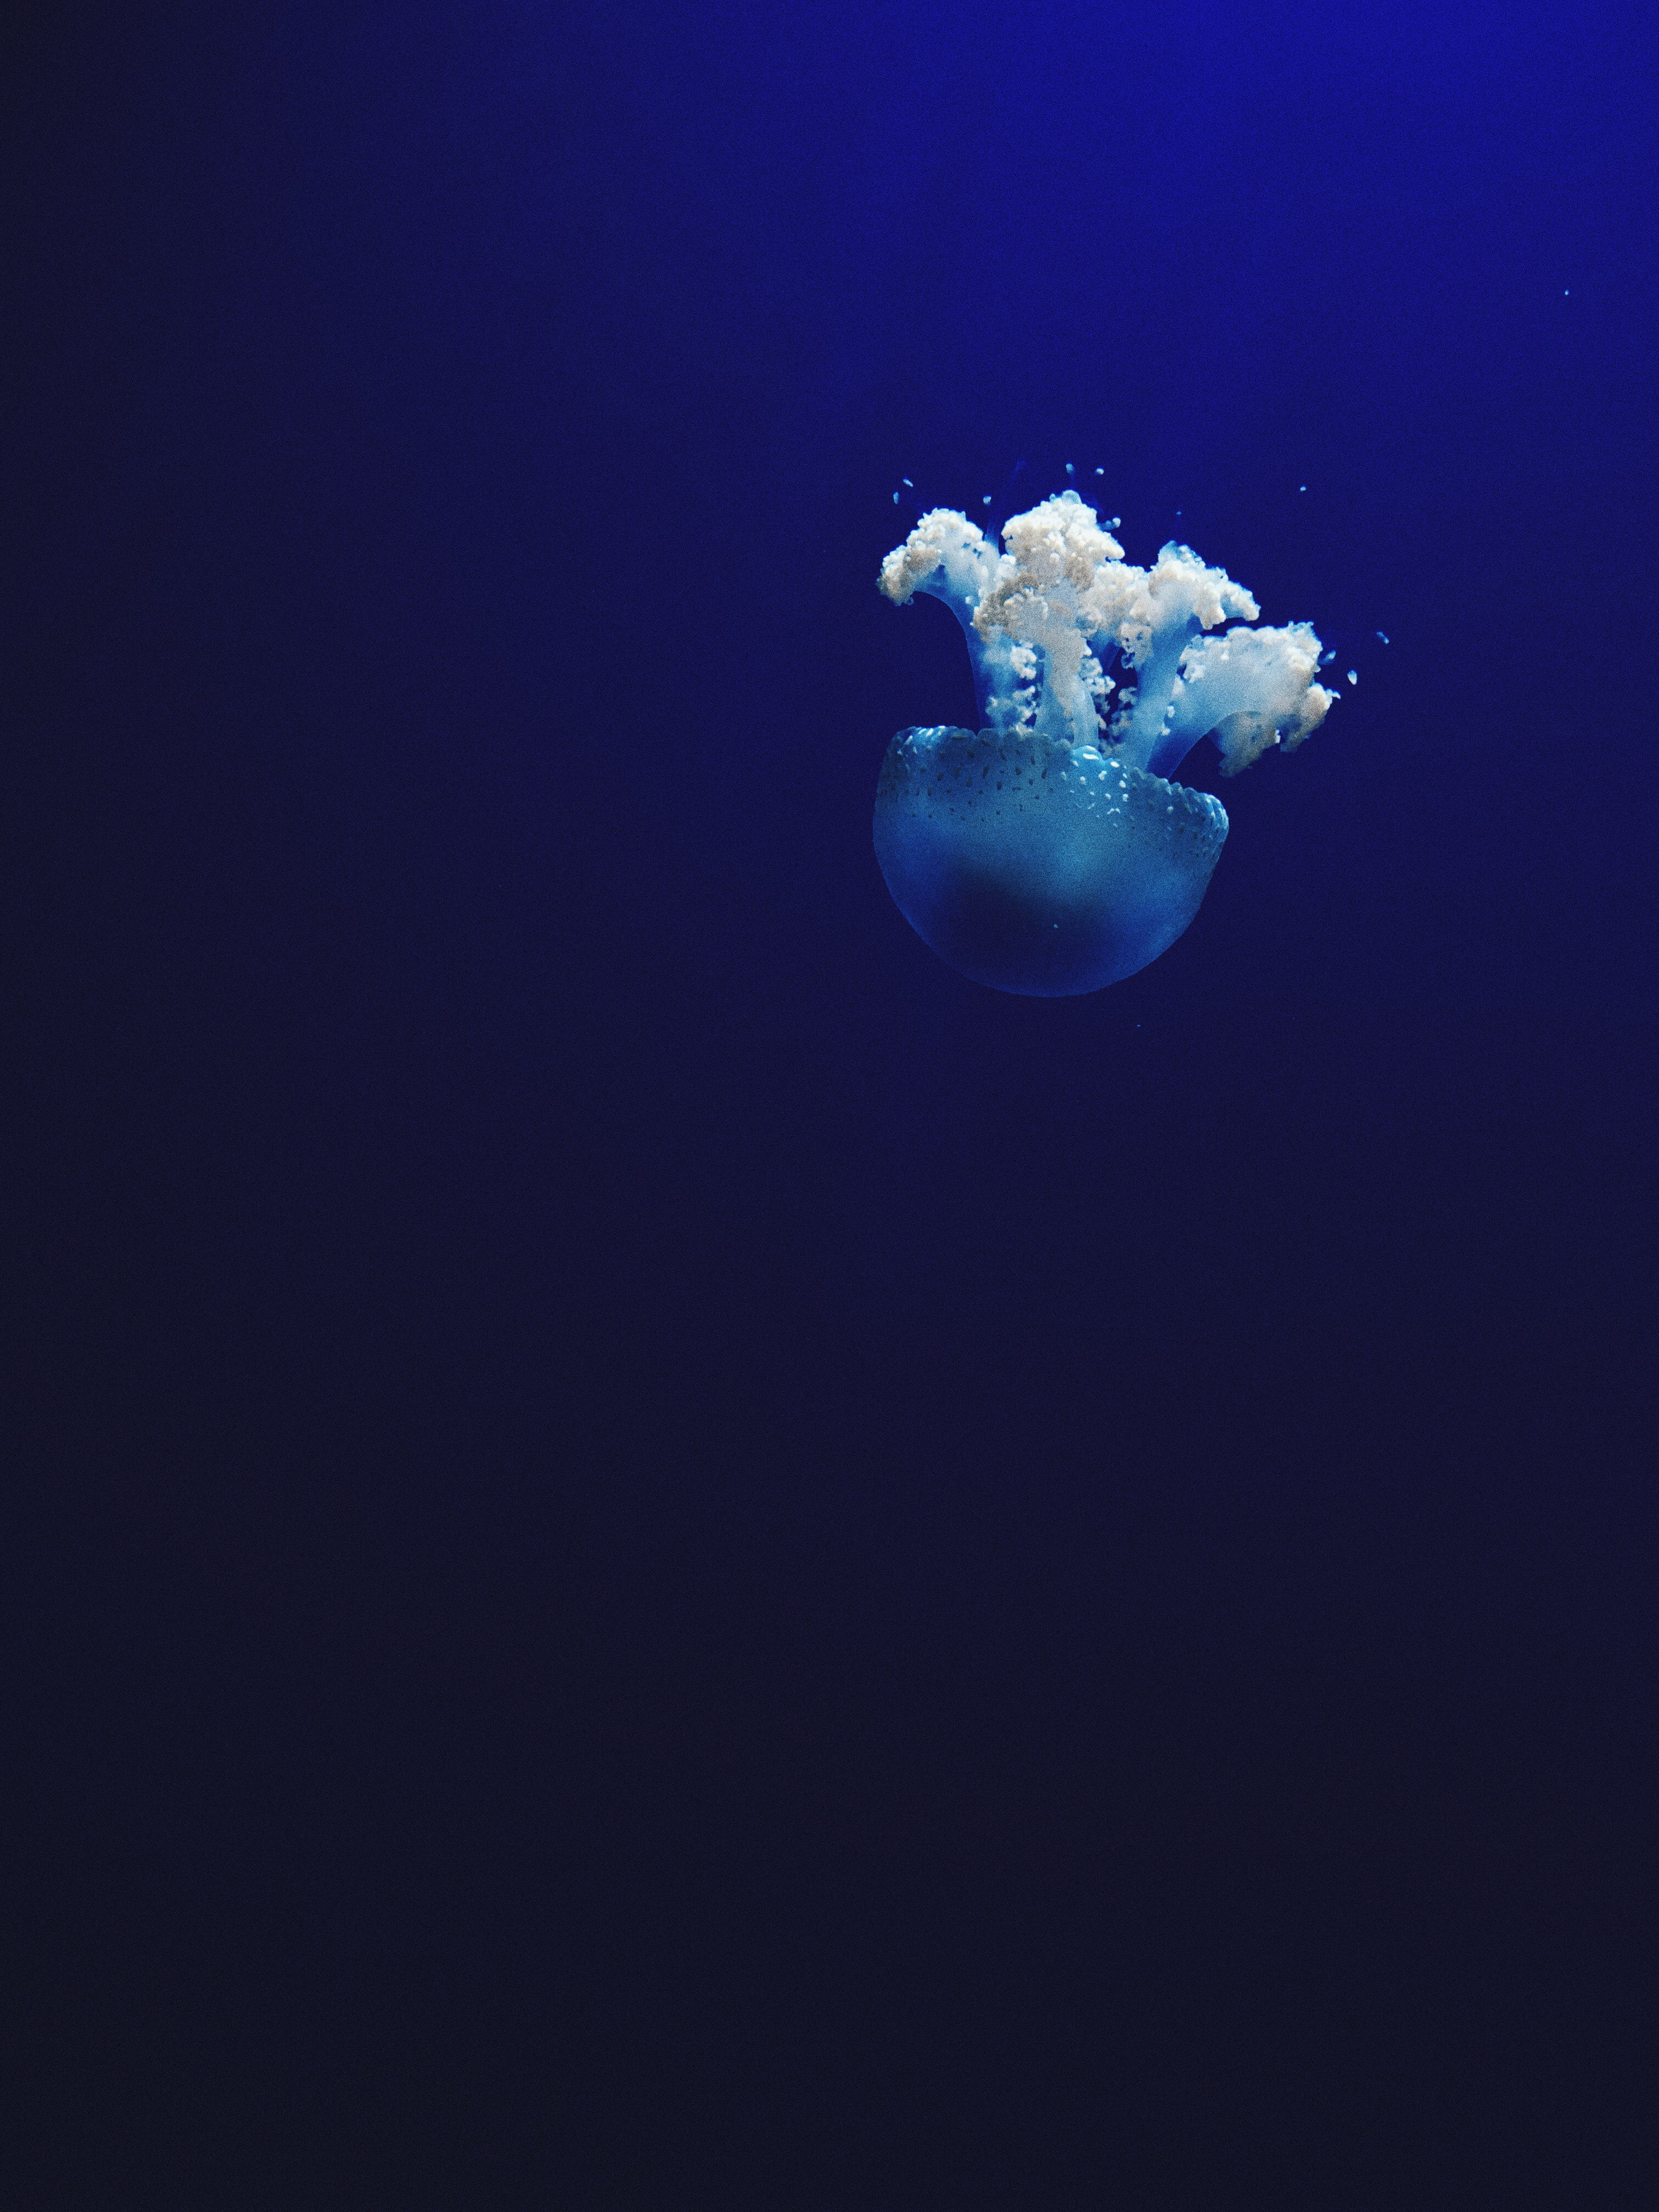 jellyfish under water photo